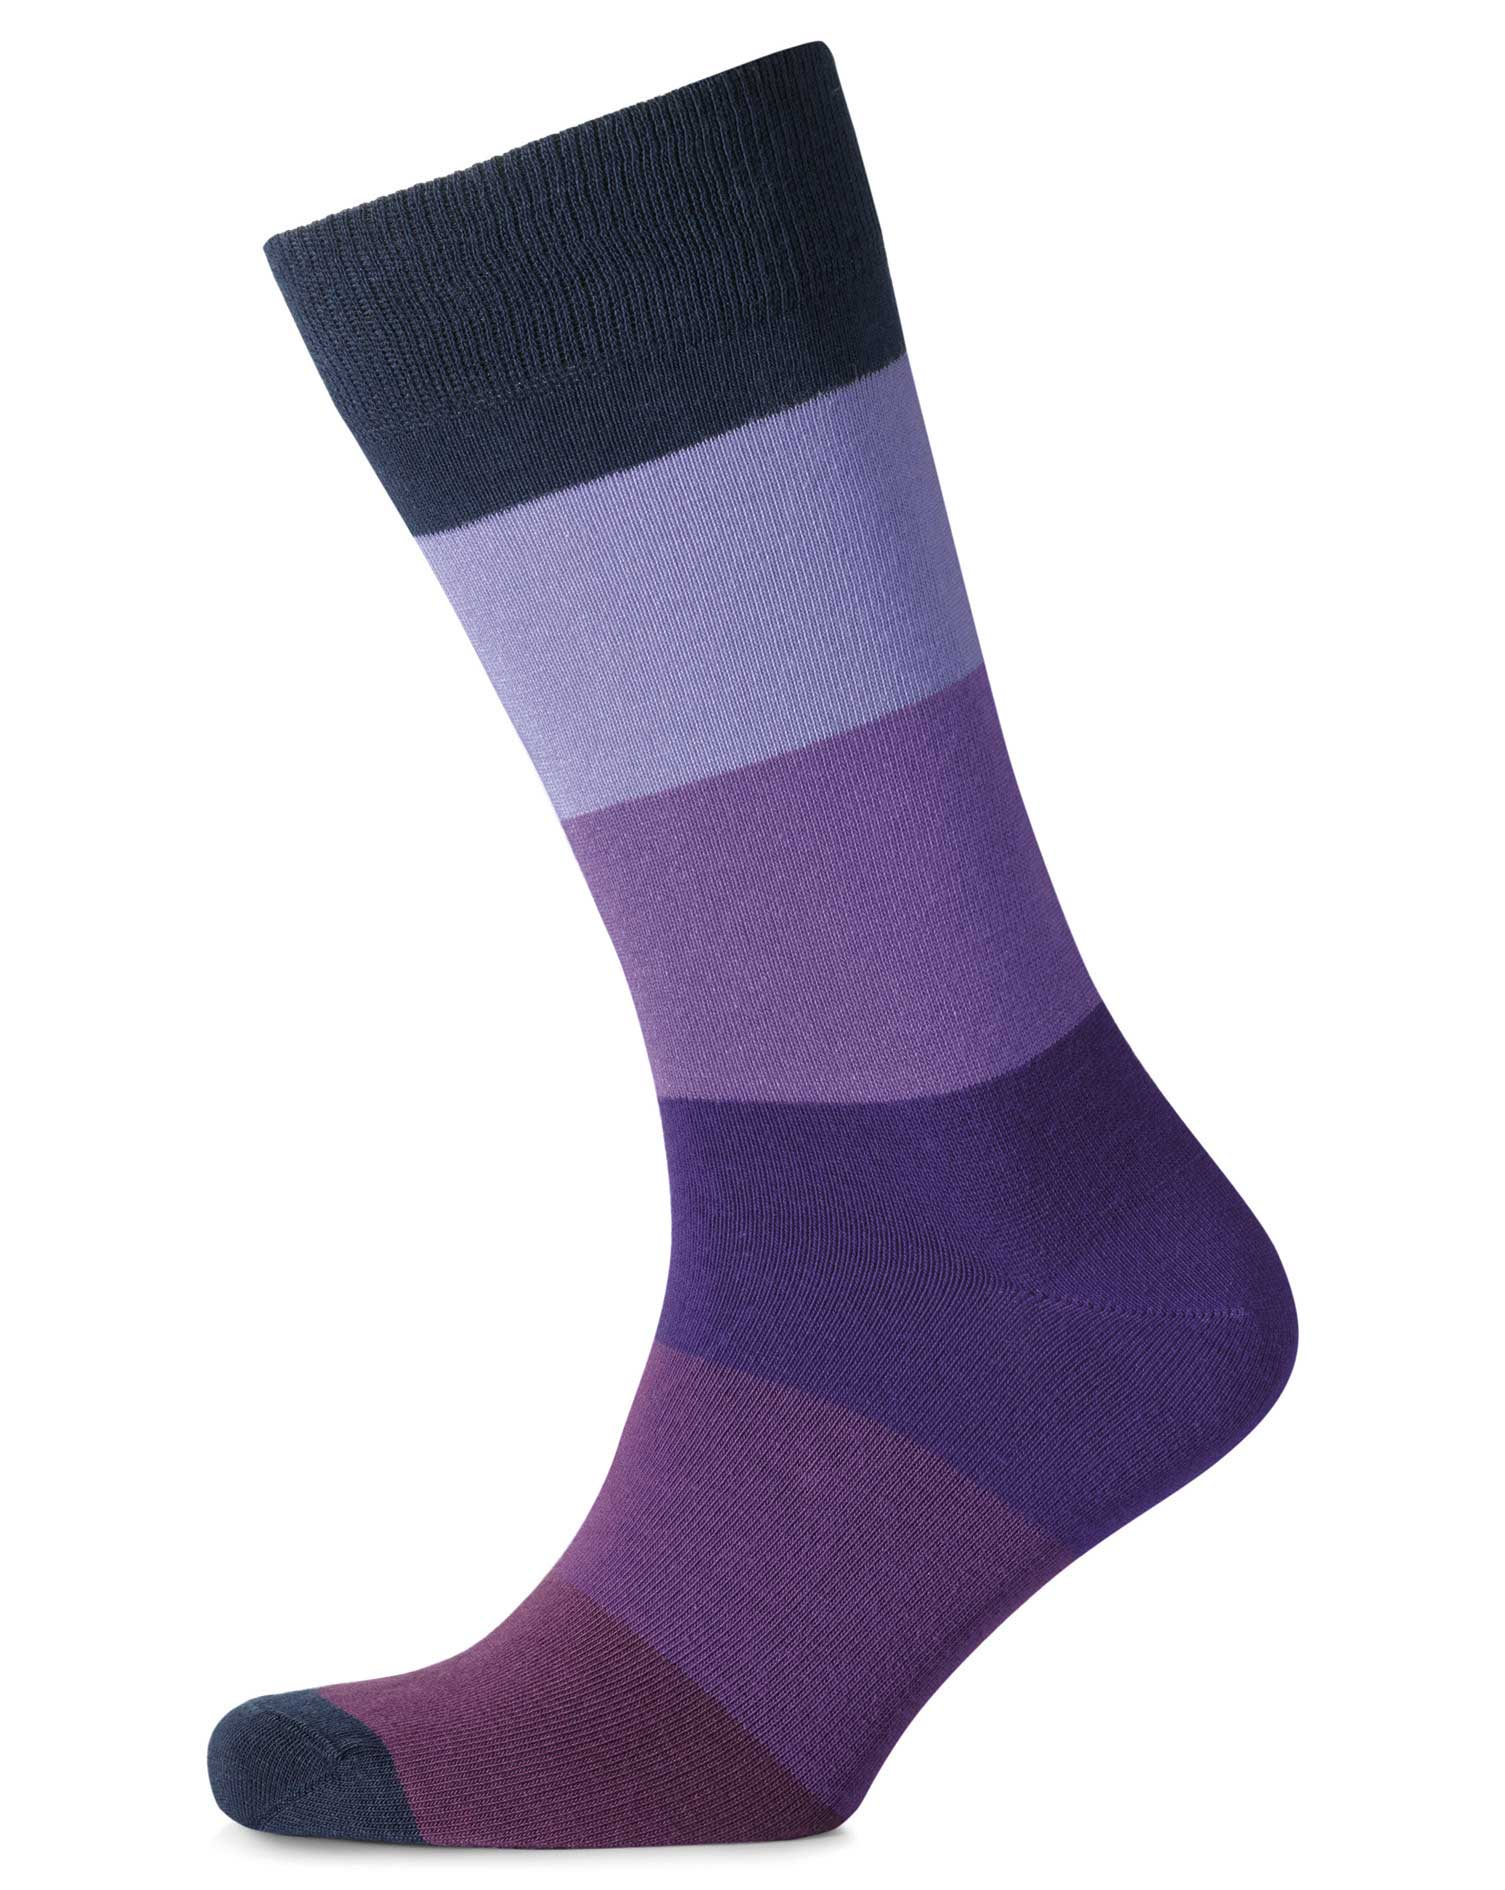 purple block stripe socks size medium by charles tyrwhitt